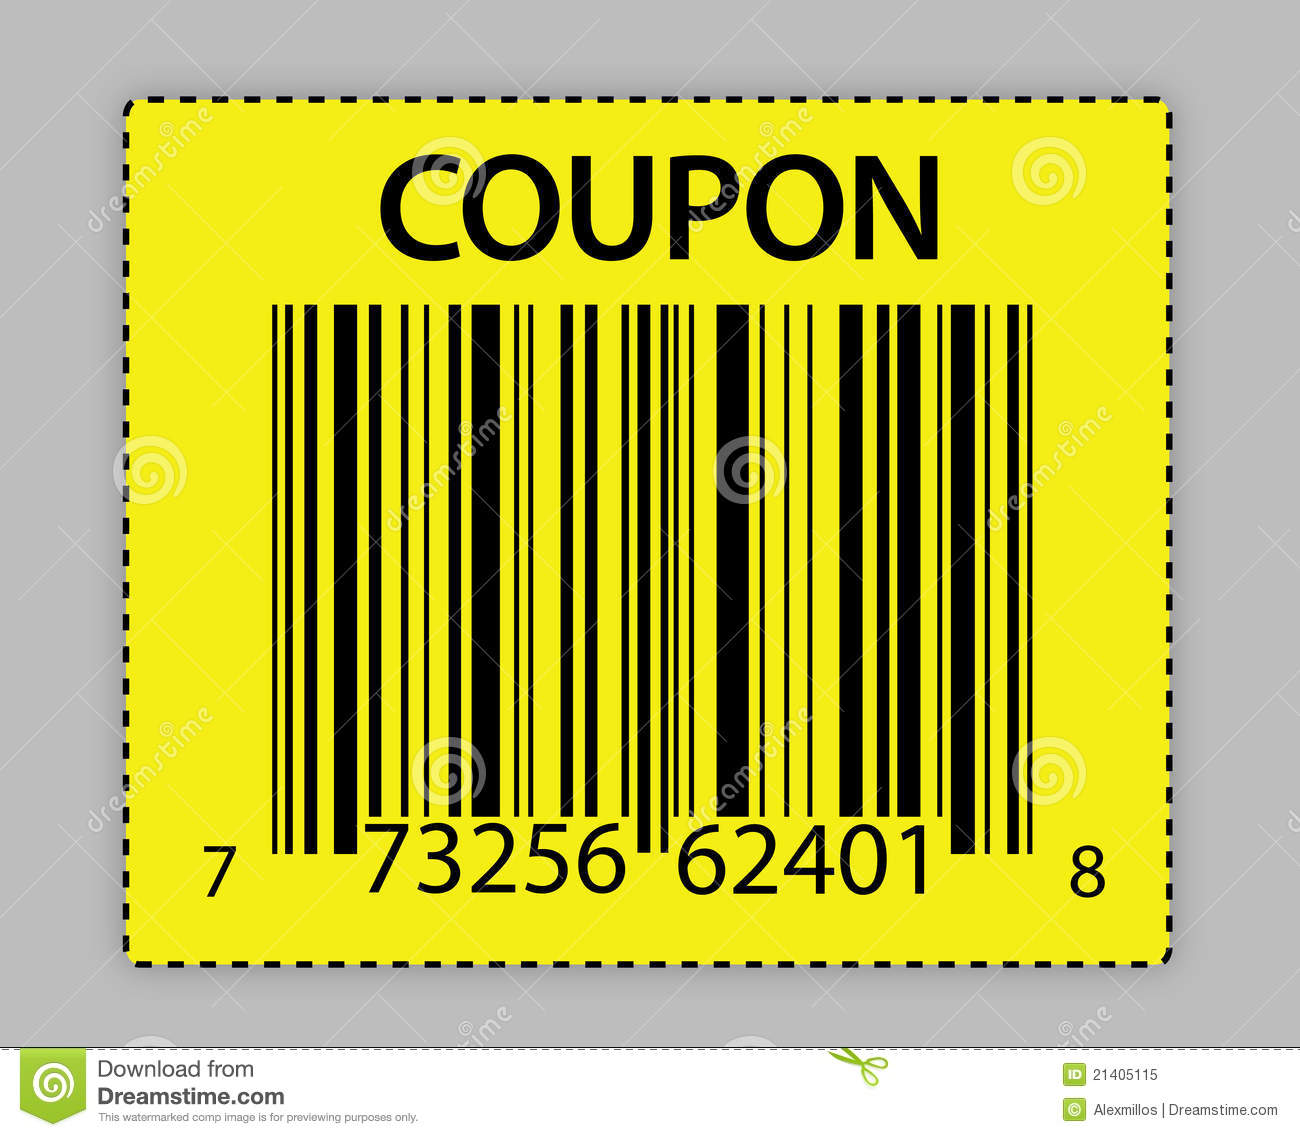 Hang time coupon code